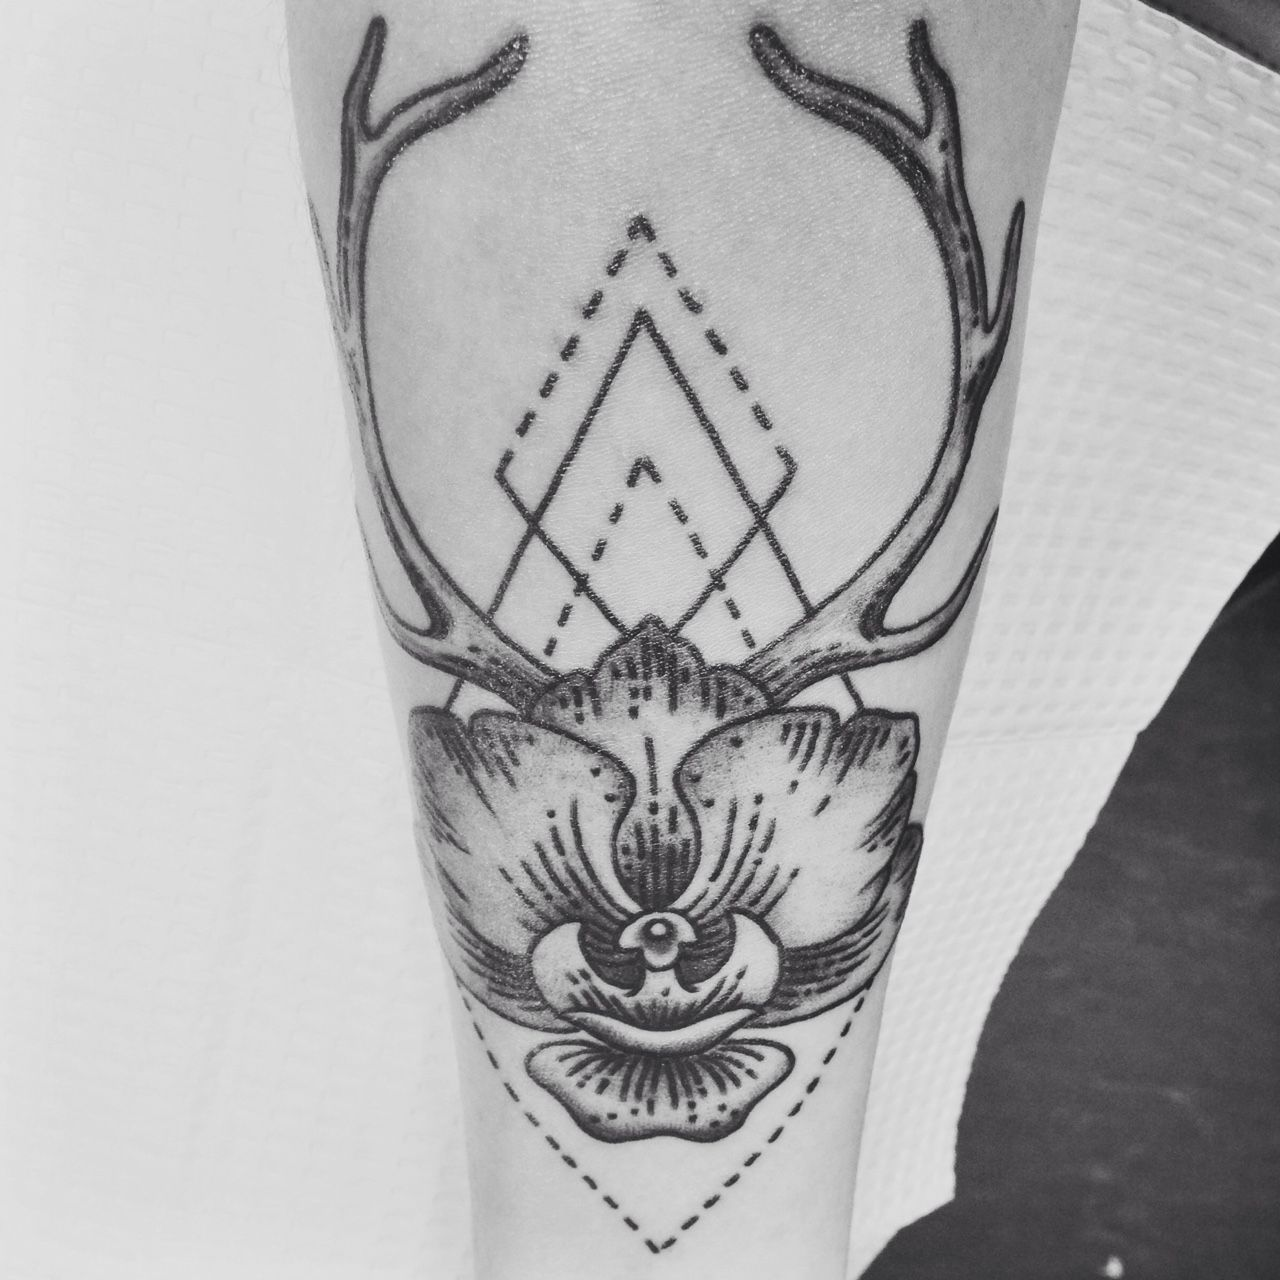 An orchid and deer antlers reminders of home done by shawn farrell